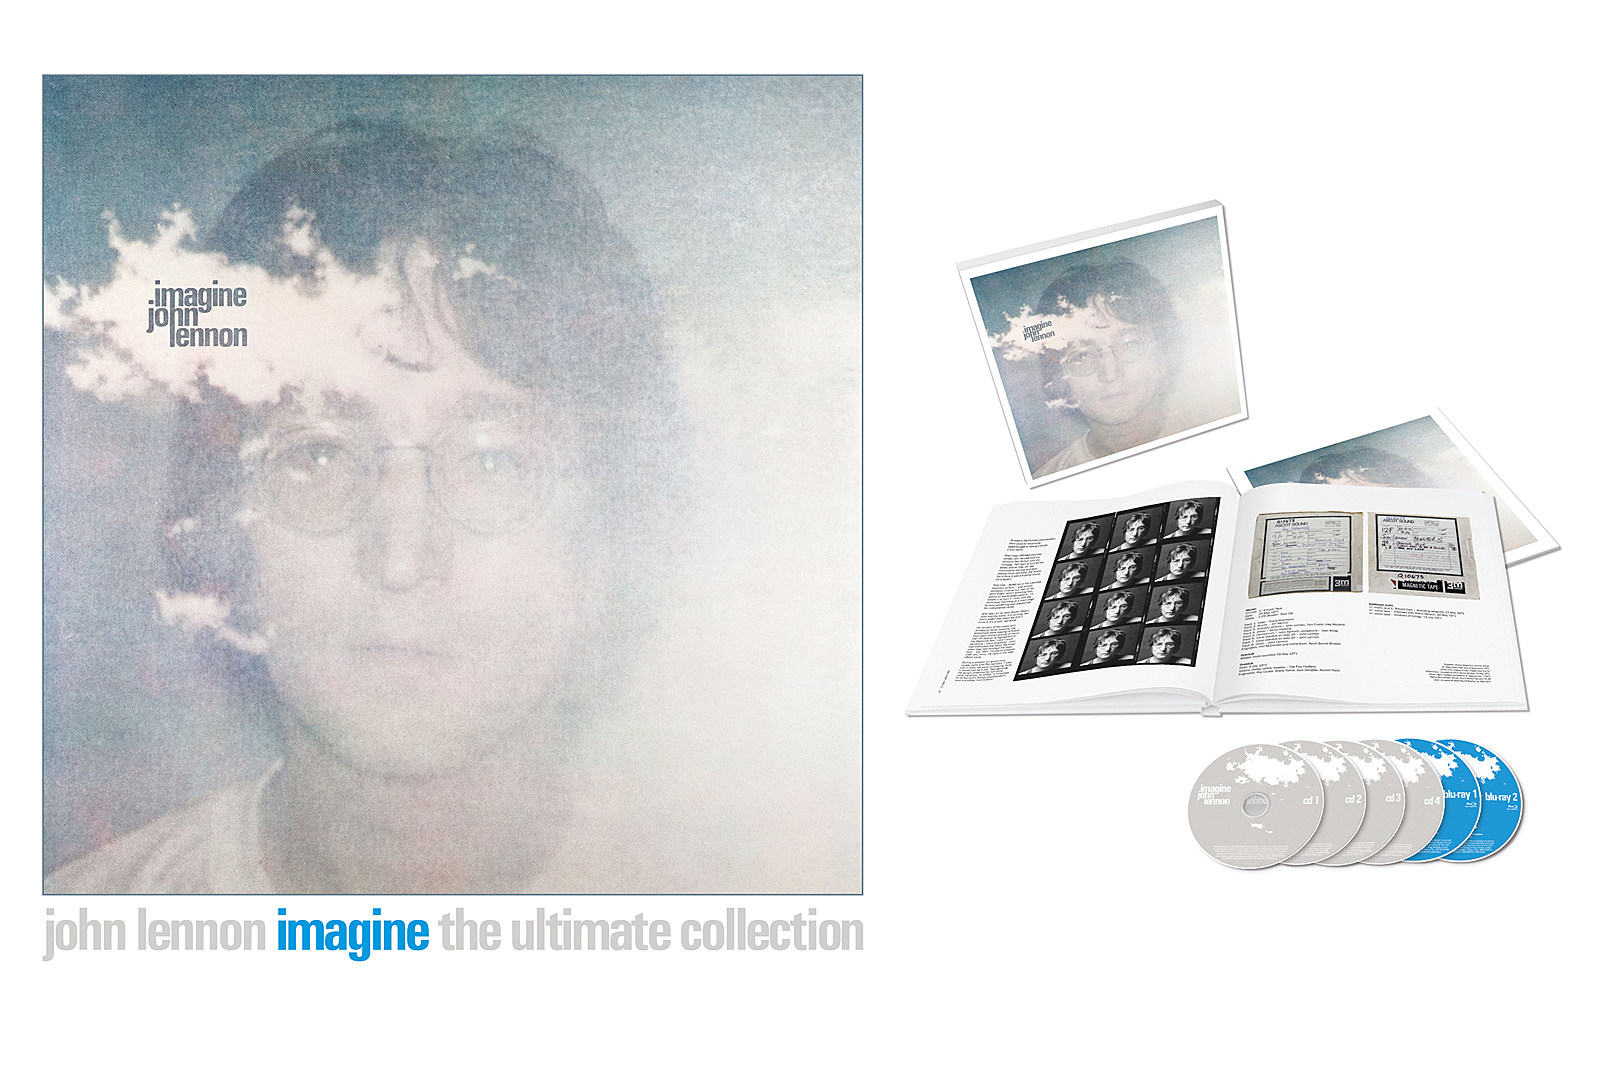 Image result for john lennon imagine the ultimate collection